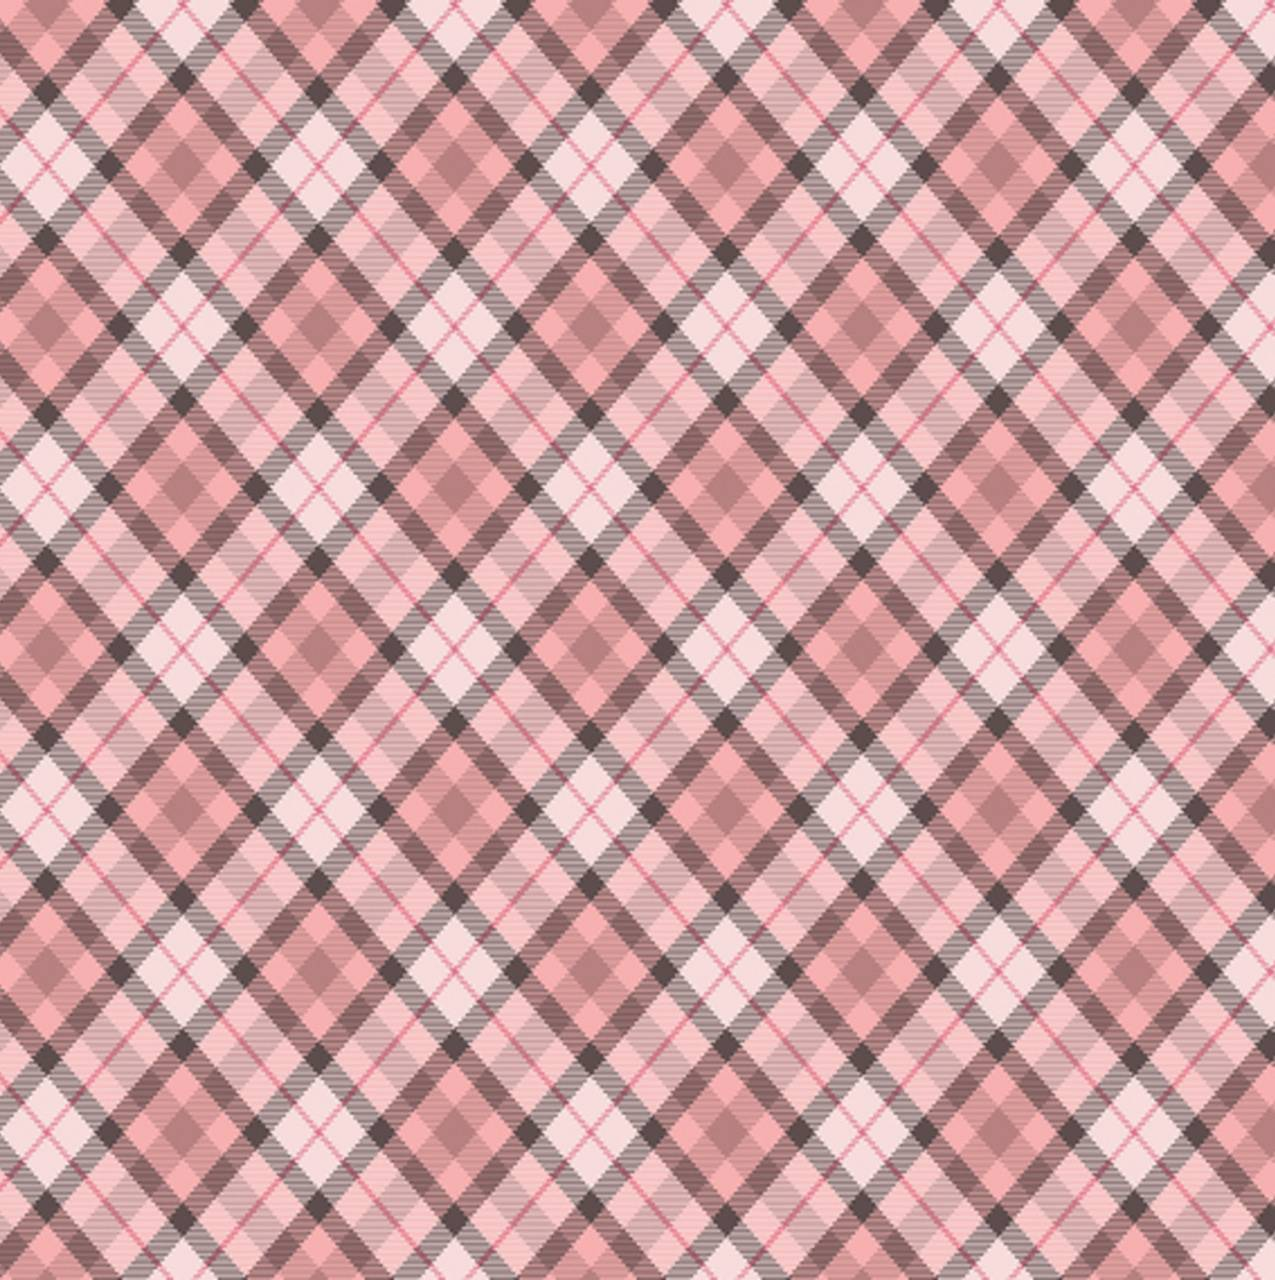 Pink Burberry wallpaper by _lovey_ - 82